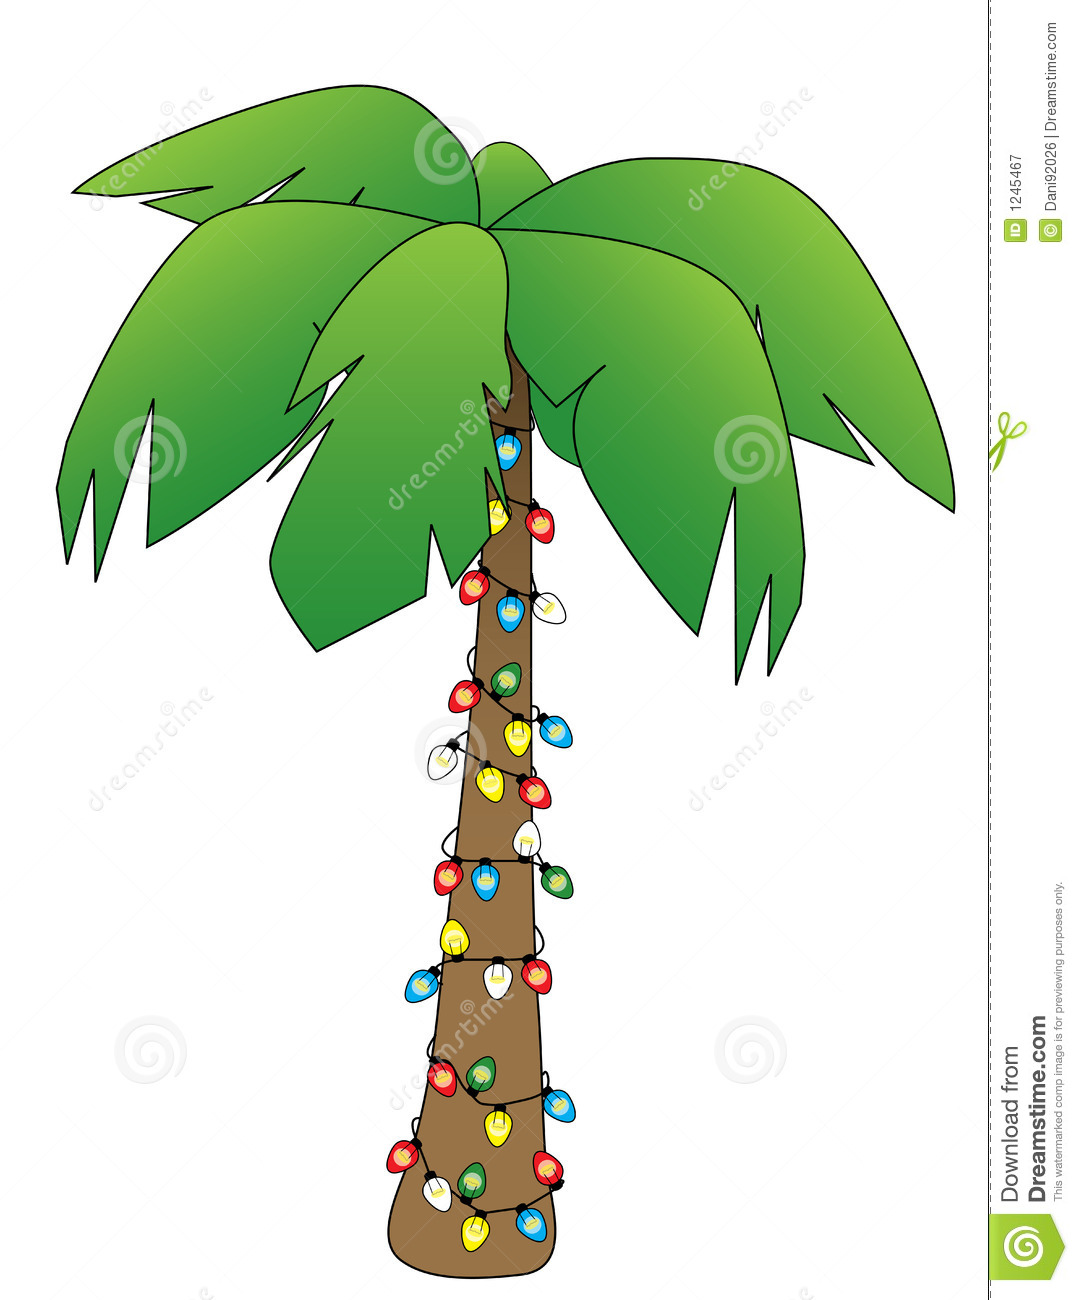 1078x1300 Christmas Palm Tree Clipart, Plastic Palm Trees With Lights